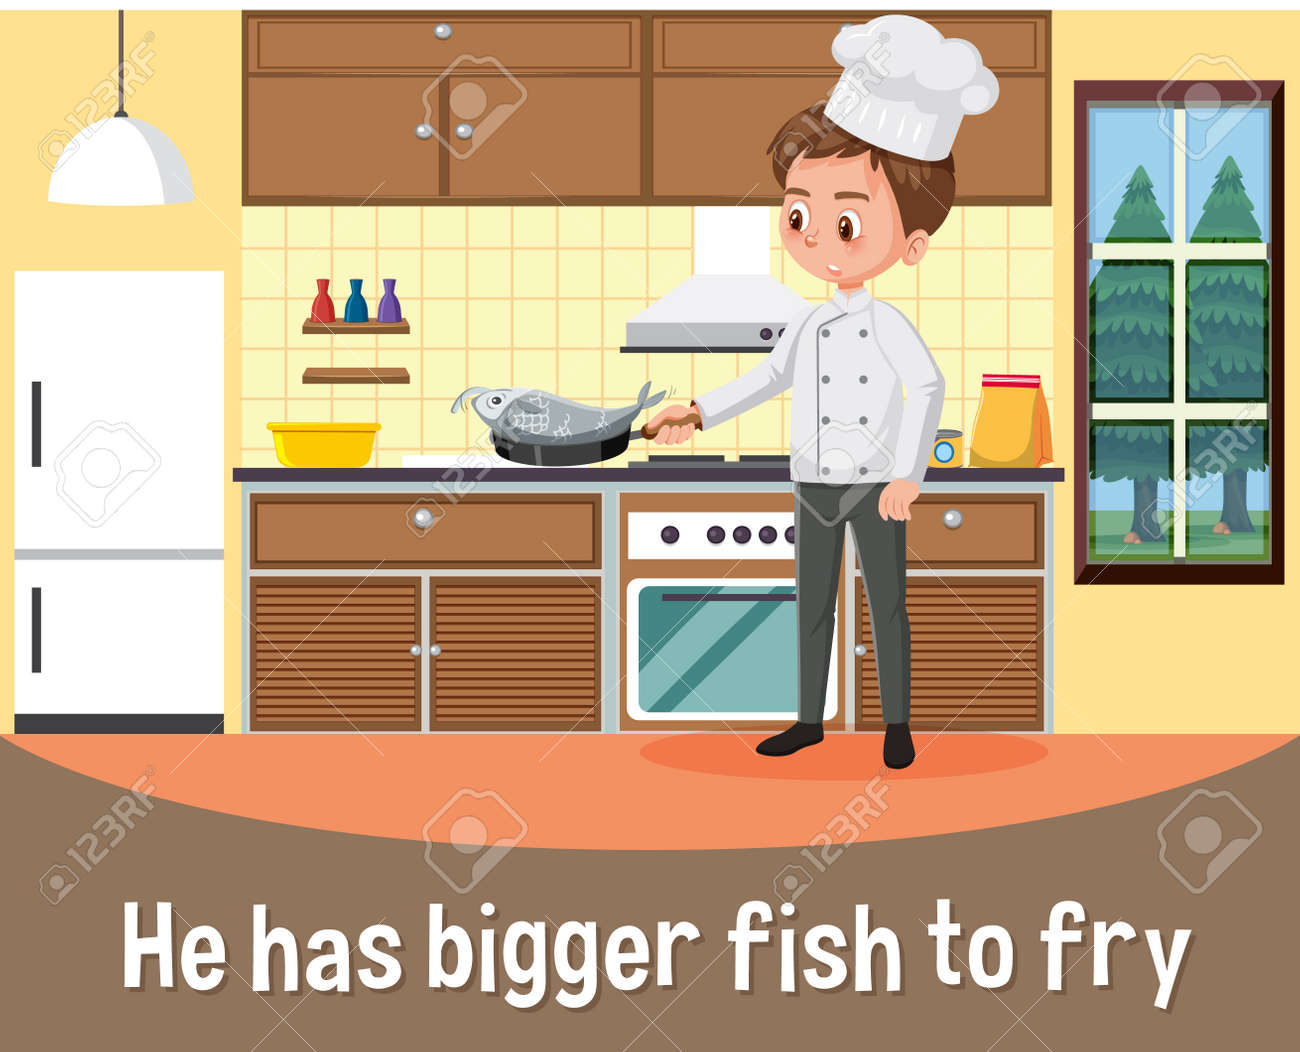 English idiom with picture description for he has bigger fish to fry illustration - 164240817